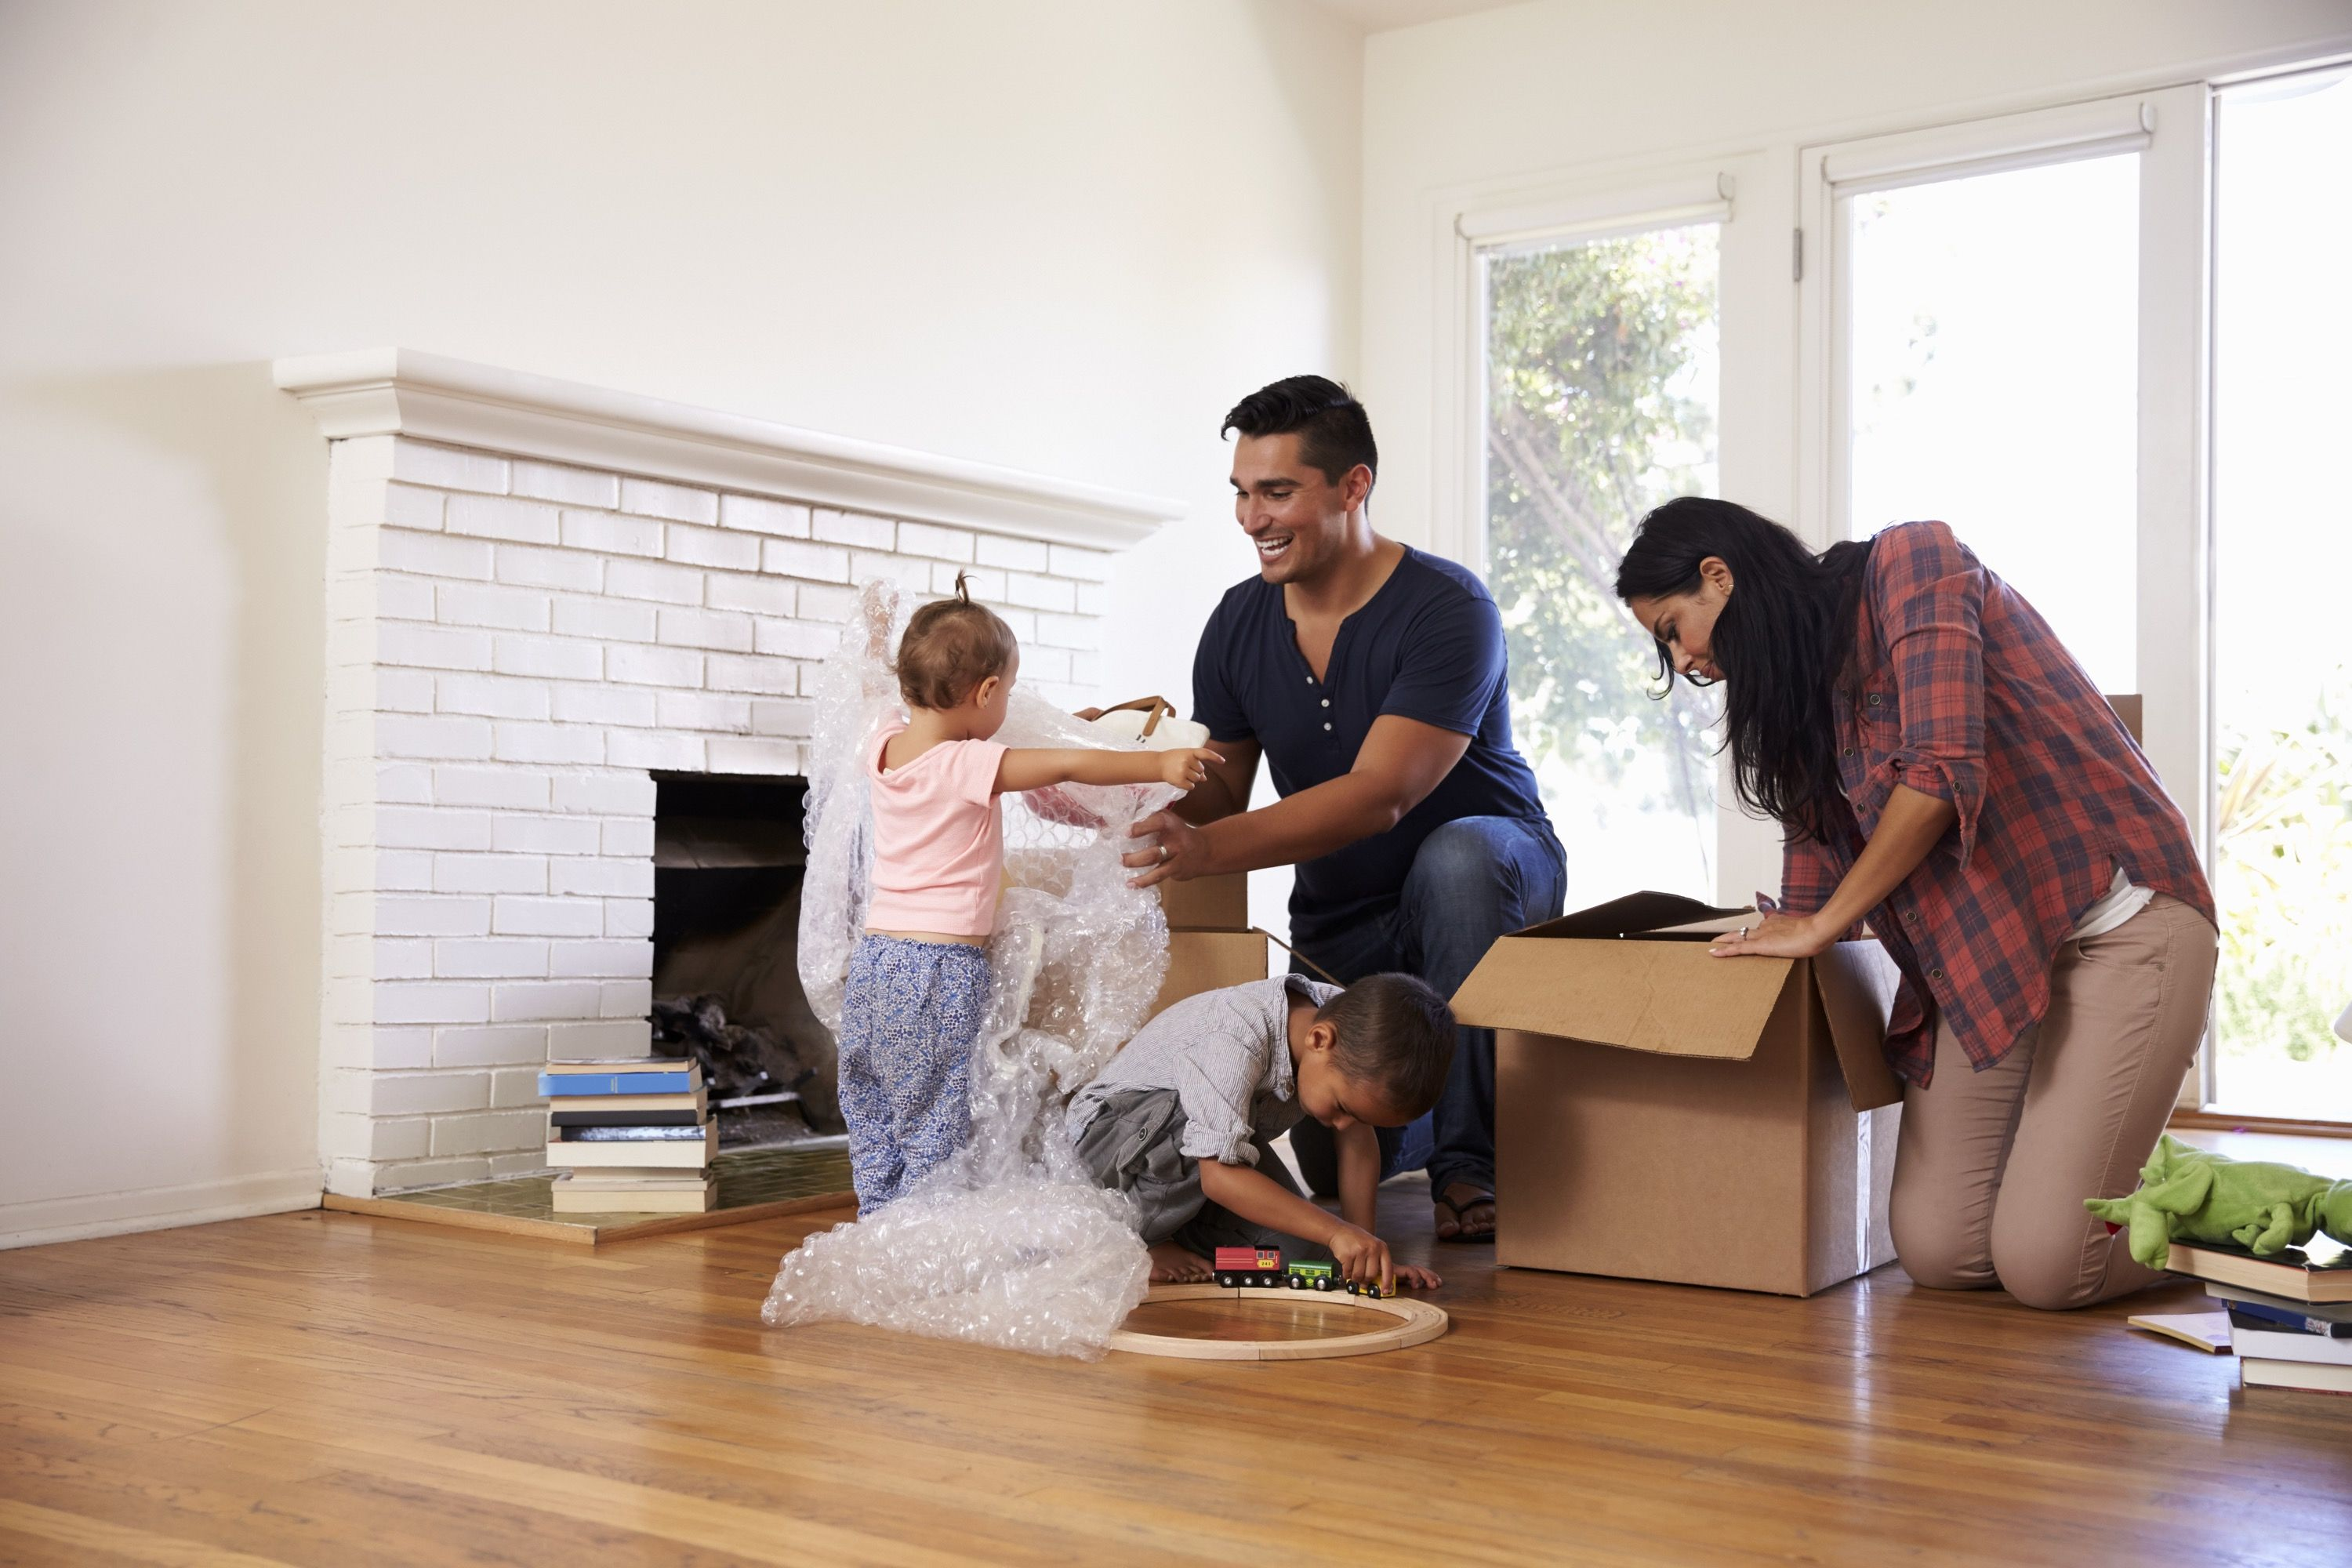 Despite budget tightening in Washington, there are many programs that will pay you for making your home cozier in the winter, cooler in the summer and more energy efficient overall.